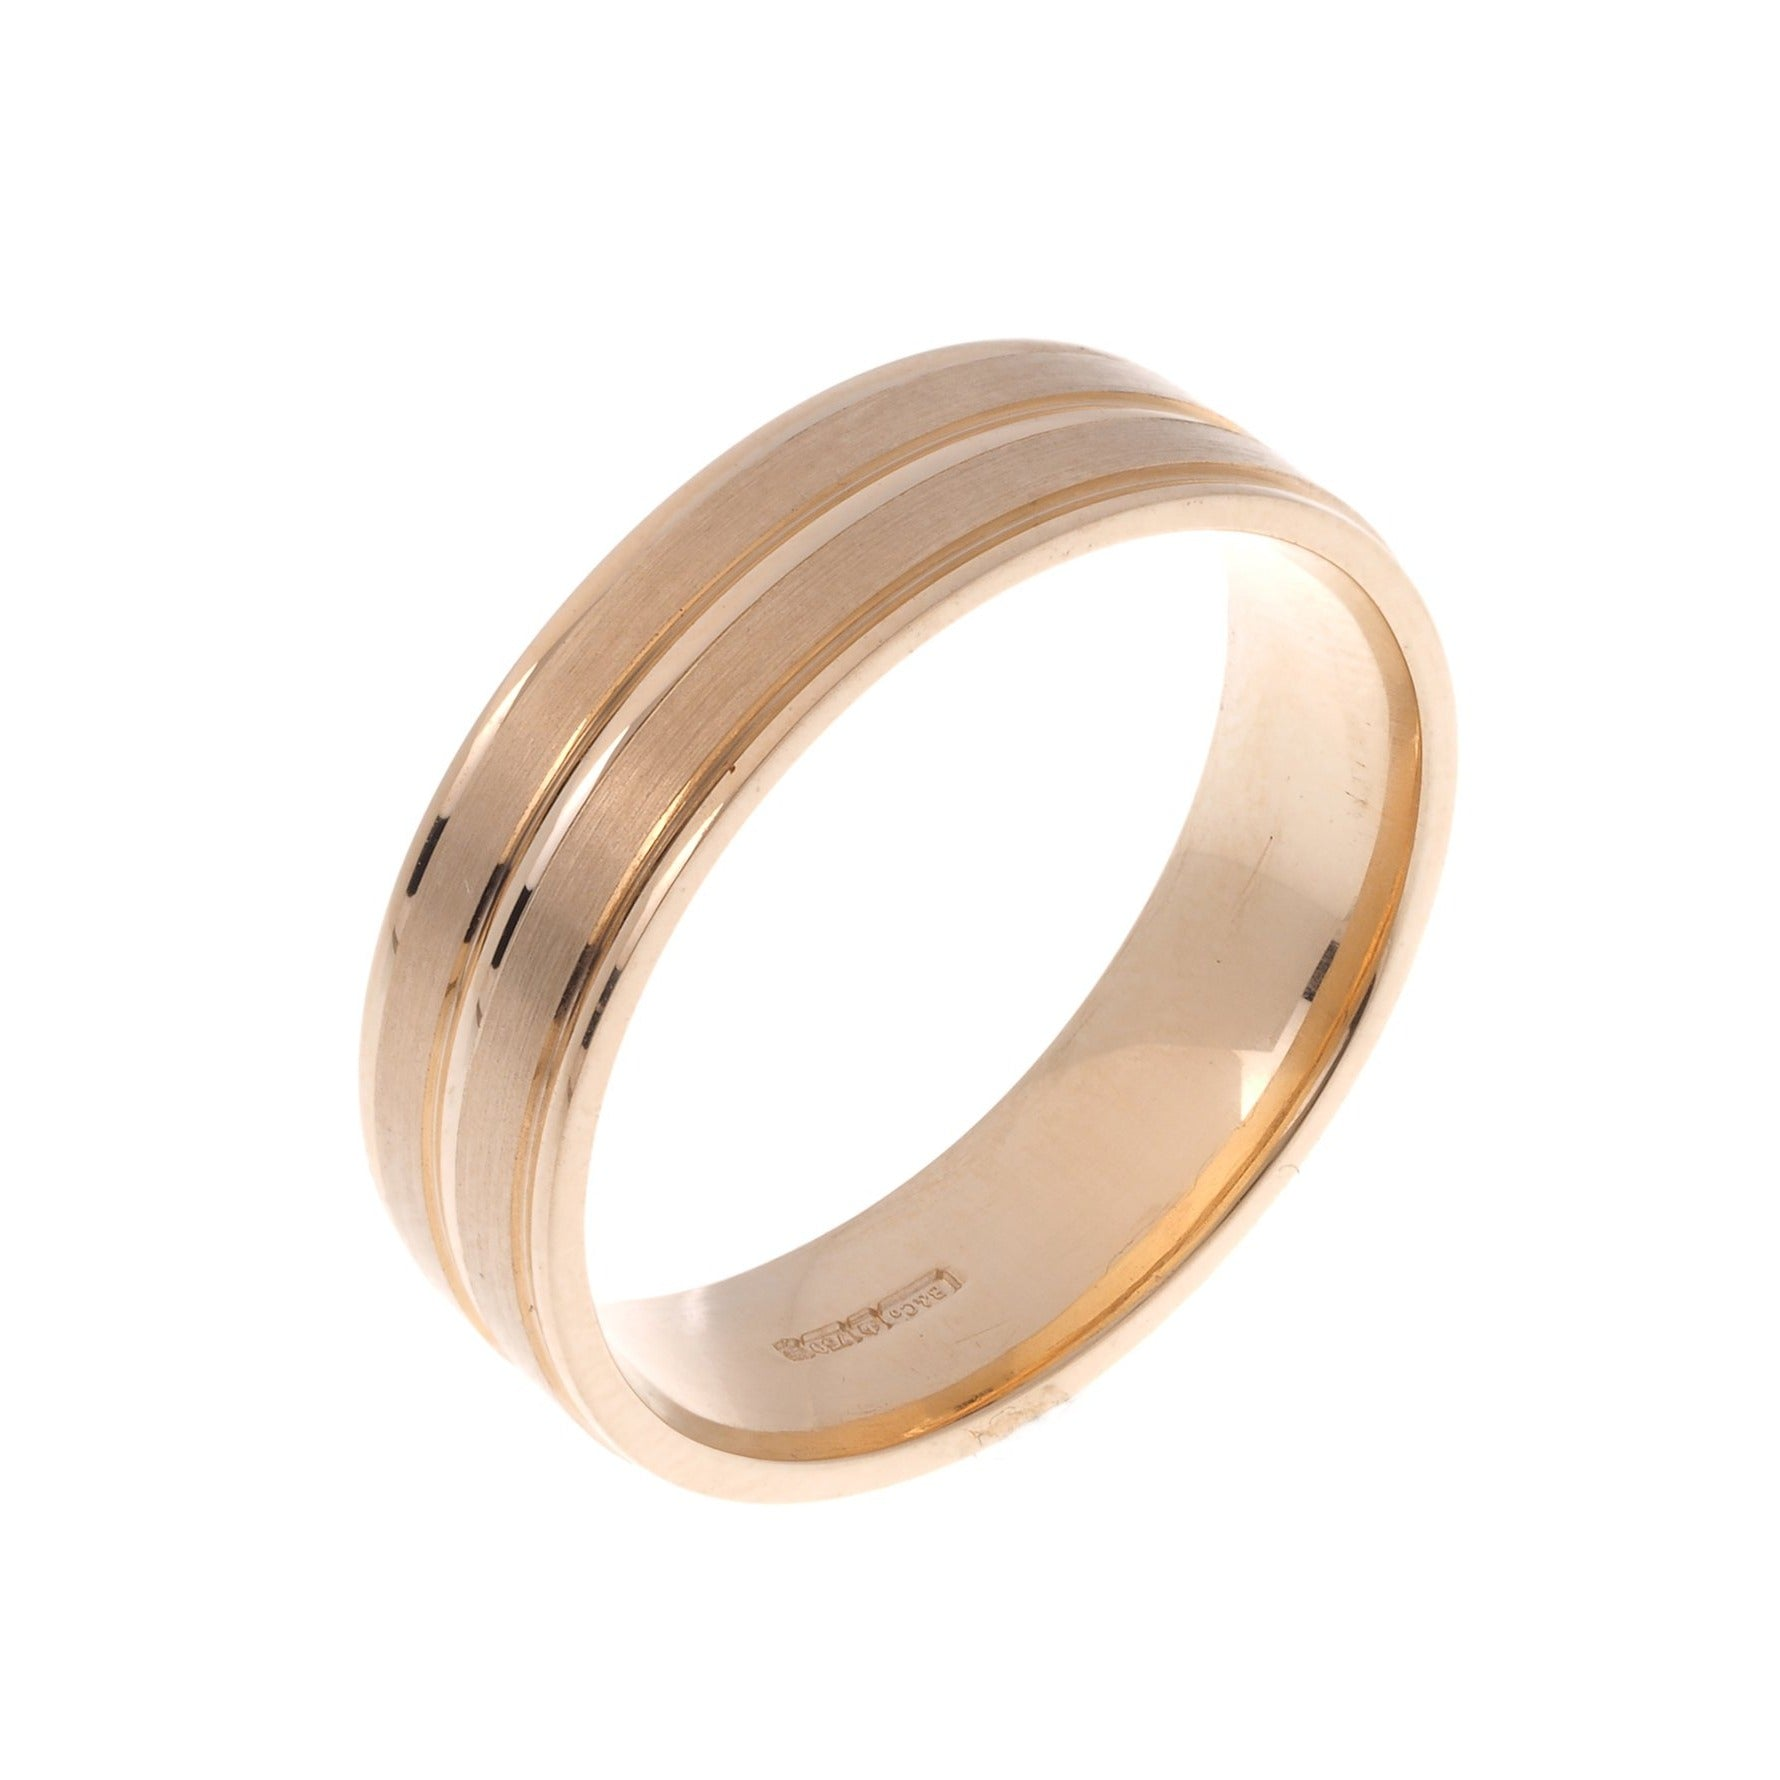 18ct 'Blush' Rose Gold Gents Court Wedding Band with Diamond Cut Design R/WBUFHBlushDiaCut